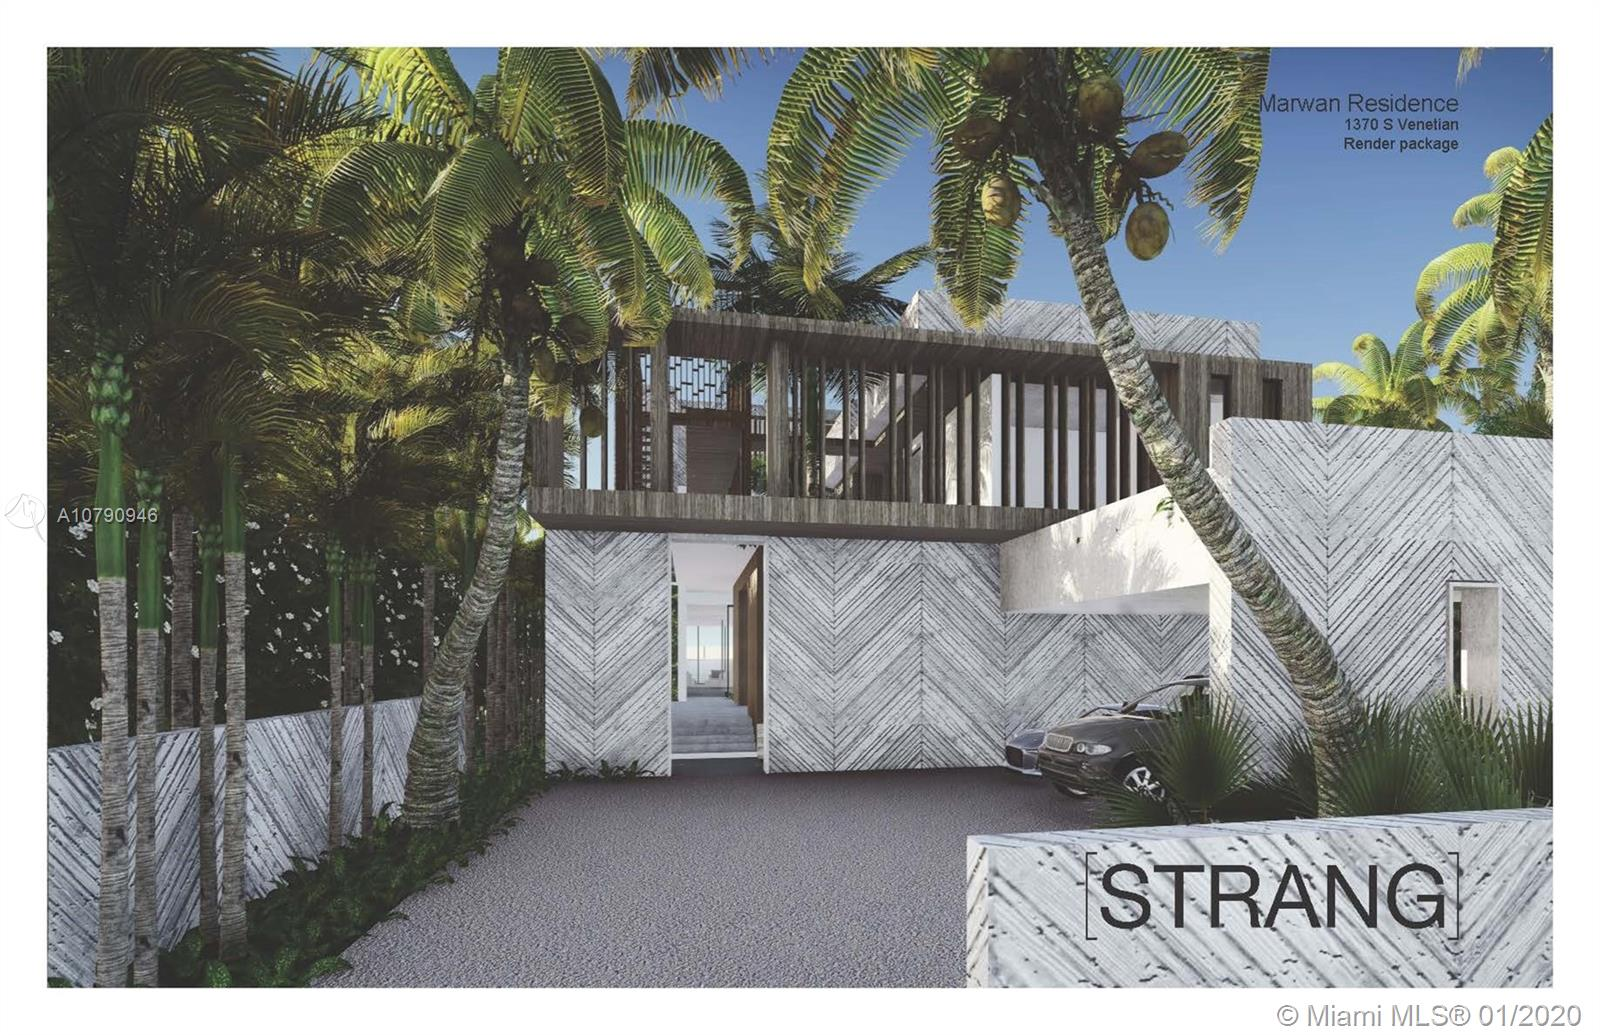 Amazing opportunity to buy one of the best South facing lots on the Venetian Islands complete with approved plans by leading Miami architect Max Strang. Enjoy postcard perfect open bay views of downtown Miami. Lot has been cleared. Save a year's worth of planning and get started with this unique 7 bedroom / 7.5 bathroom modern masterpiece. State of the art design includes two infinity pools, one of which cantilevers from the elevatored roof terrace over the backyard area, spa and firepit. Great layout with 2 guest suites downstairs, 5 bedrooms upstairs, and multiple outdoor spaces. Smart home with the finest finishes.